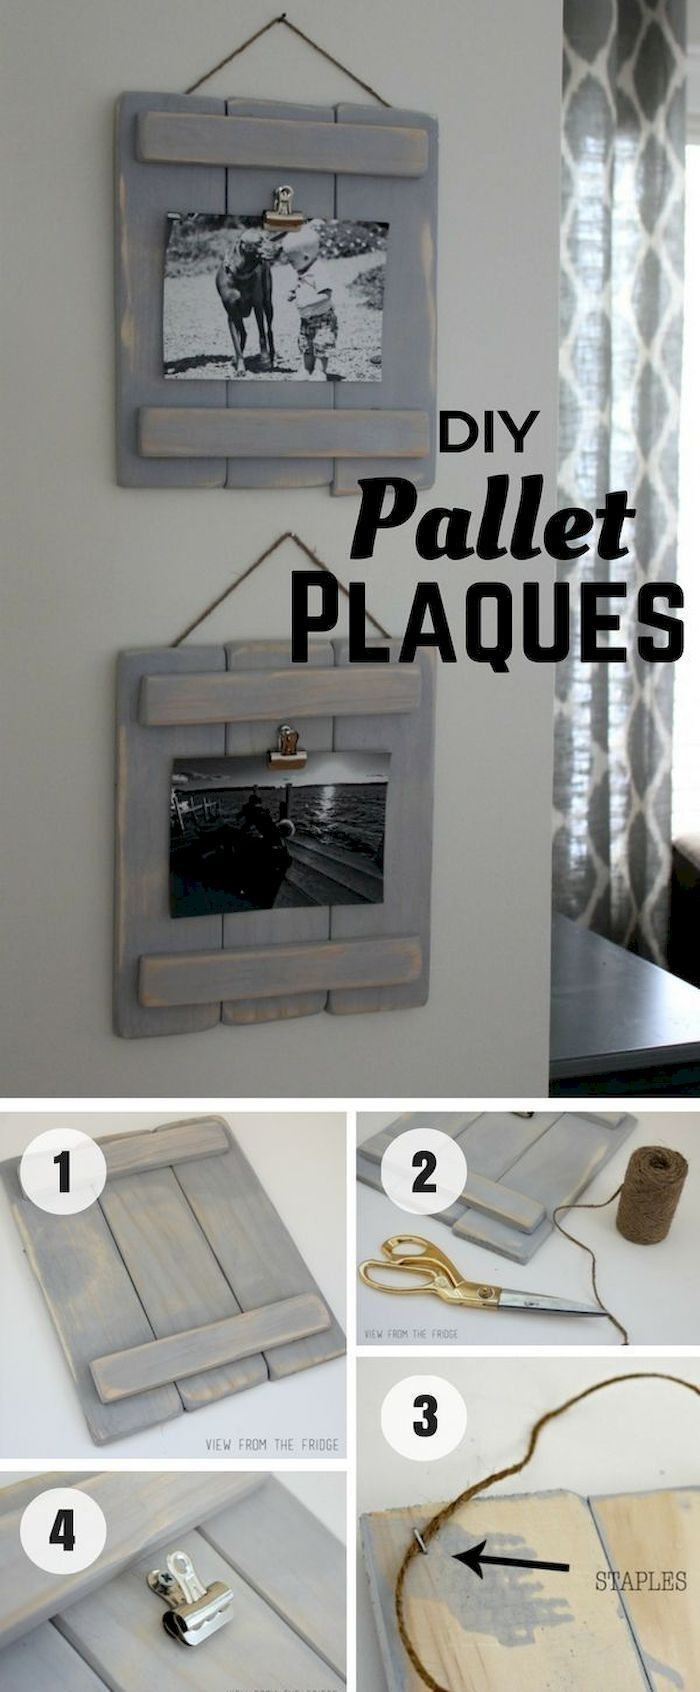 50+ Easy and Stunning DIY Wood Projects Ideas for Decorate Your Home